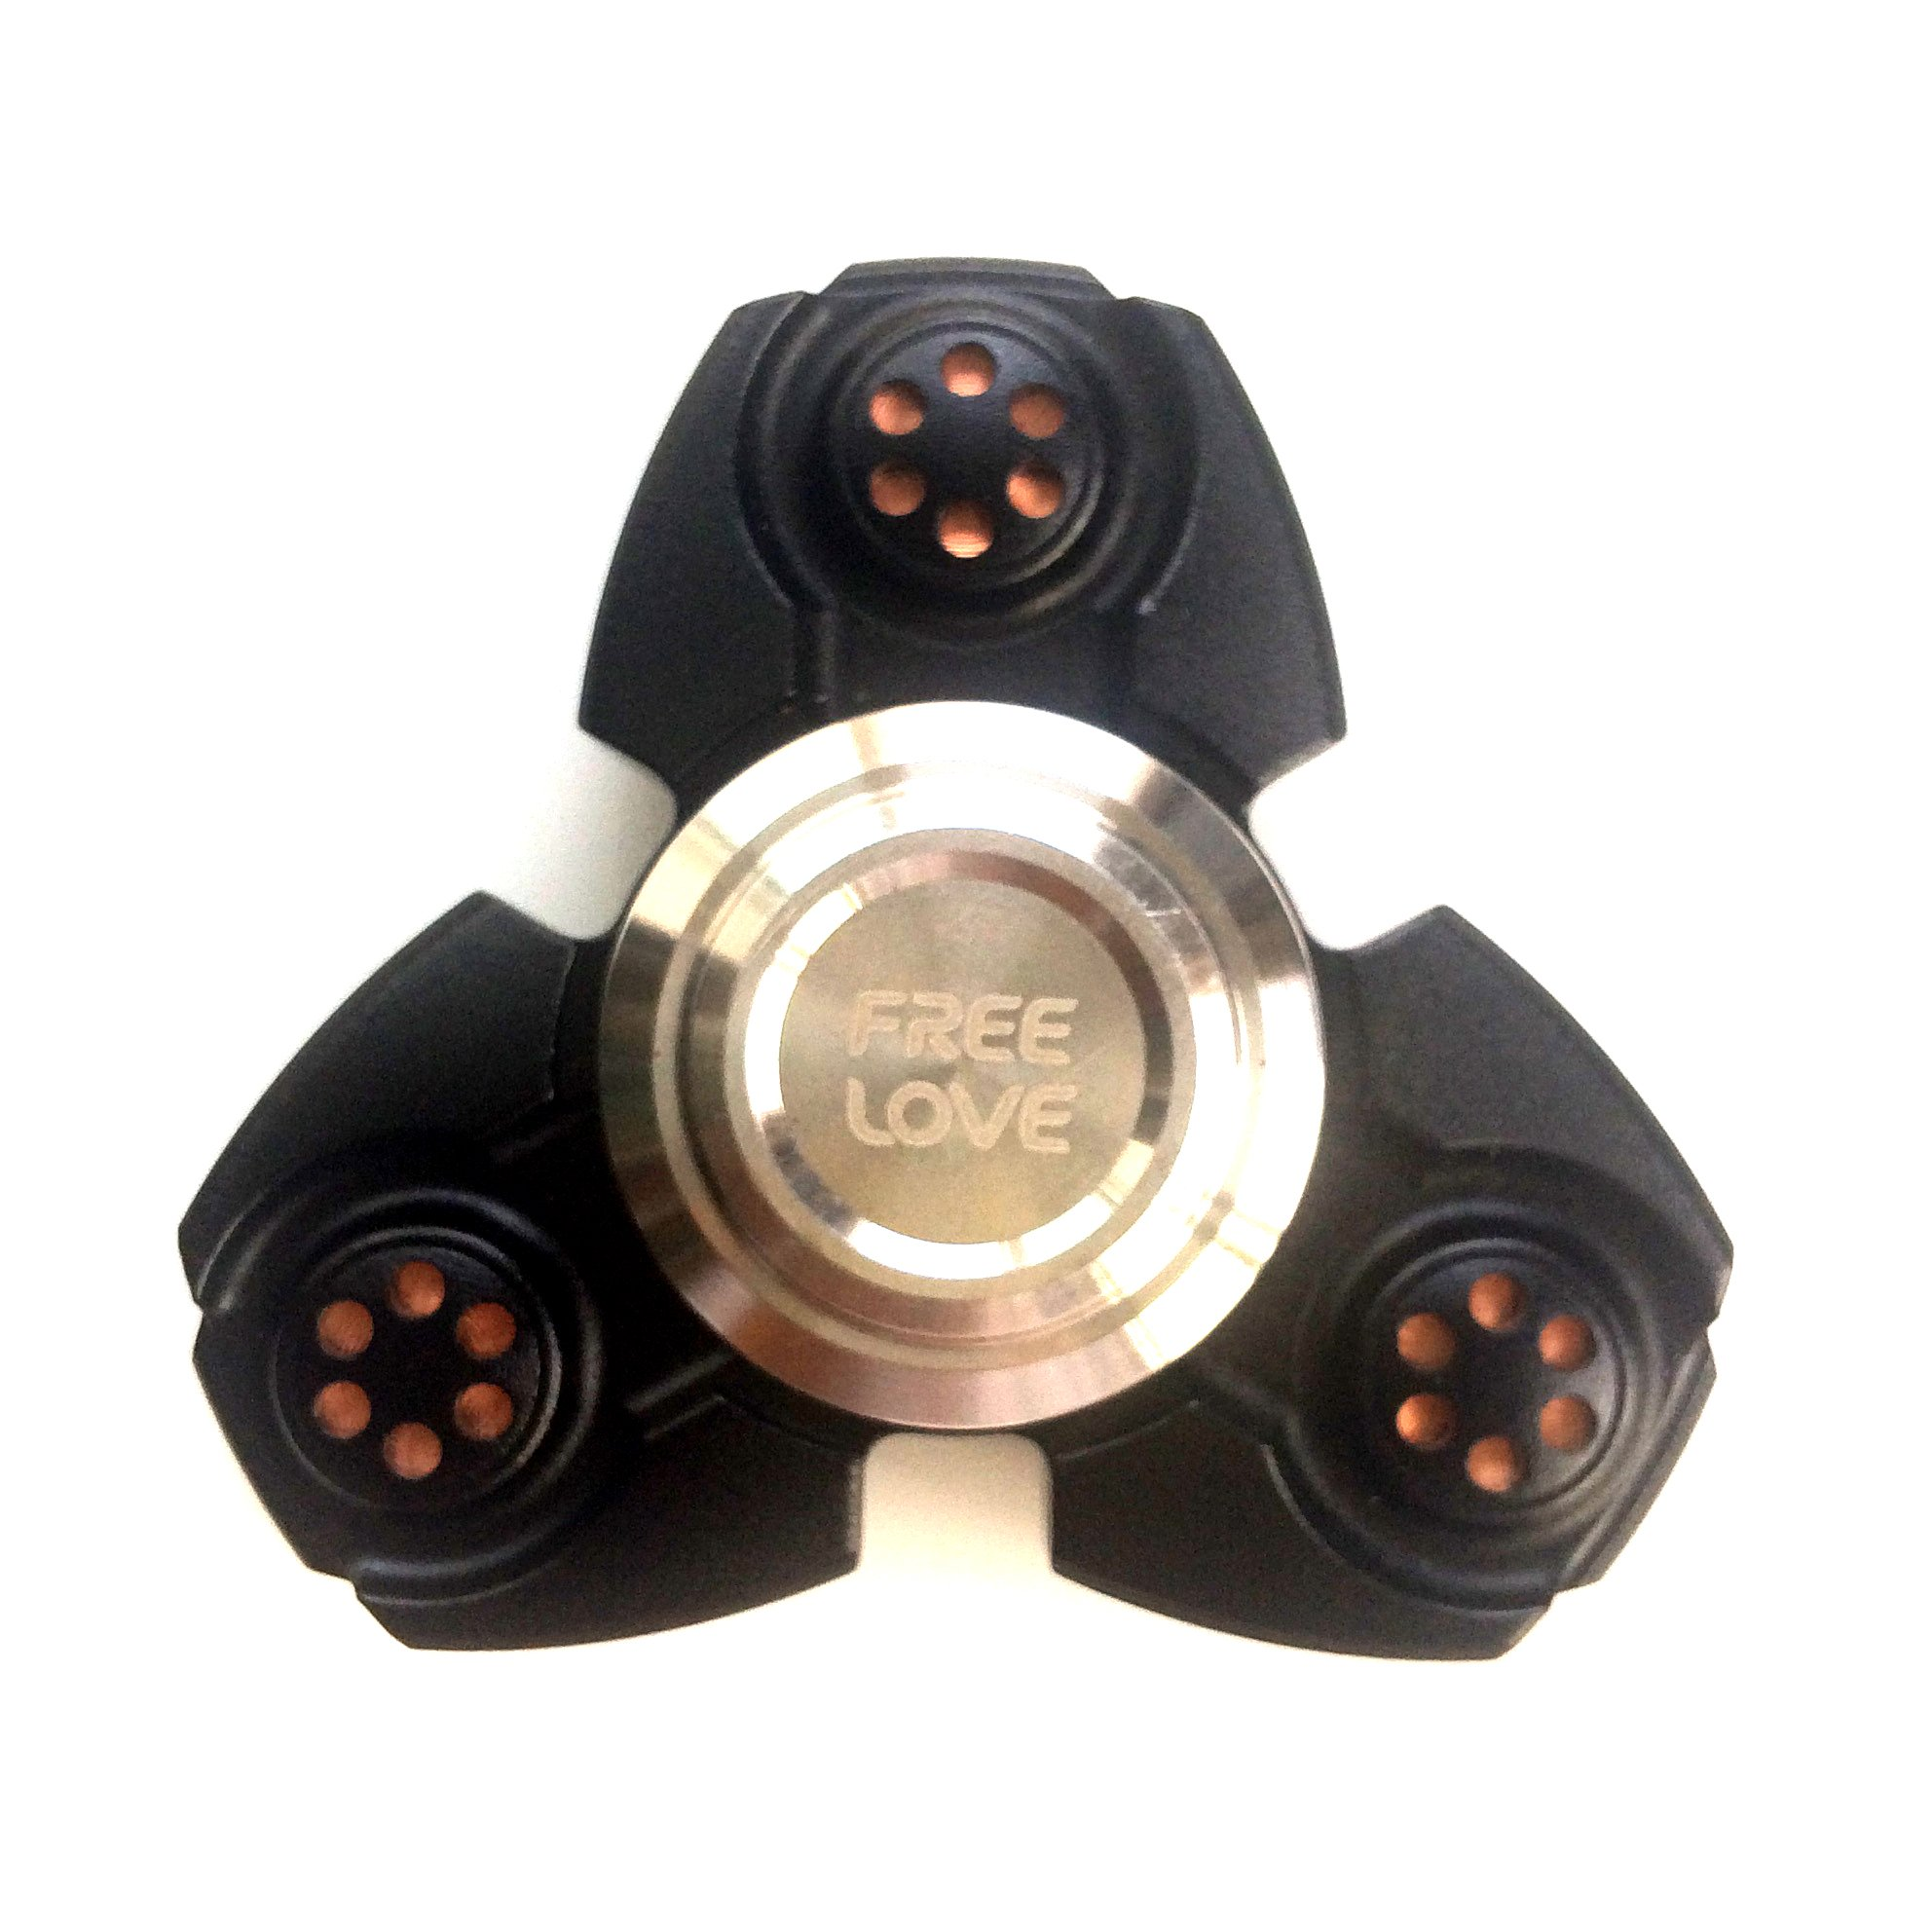 FREELOVE Russia UFO Triangle Design Fidget Spinner Toy Stress Reducer Premium EDC Disassemble Silicon Nitride Ceramic Bearing Helps Focus, Stress, Anxiety, ADHD (Aluminum Alloy Black, Aluminum Alloy) by FREELOVE (Image #6)